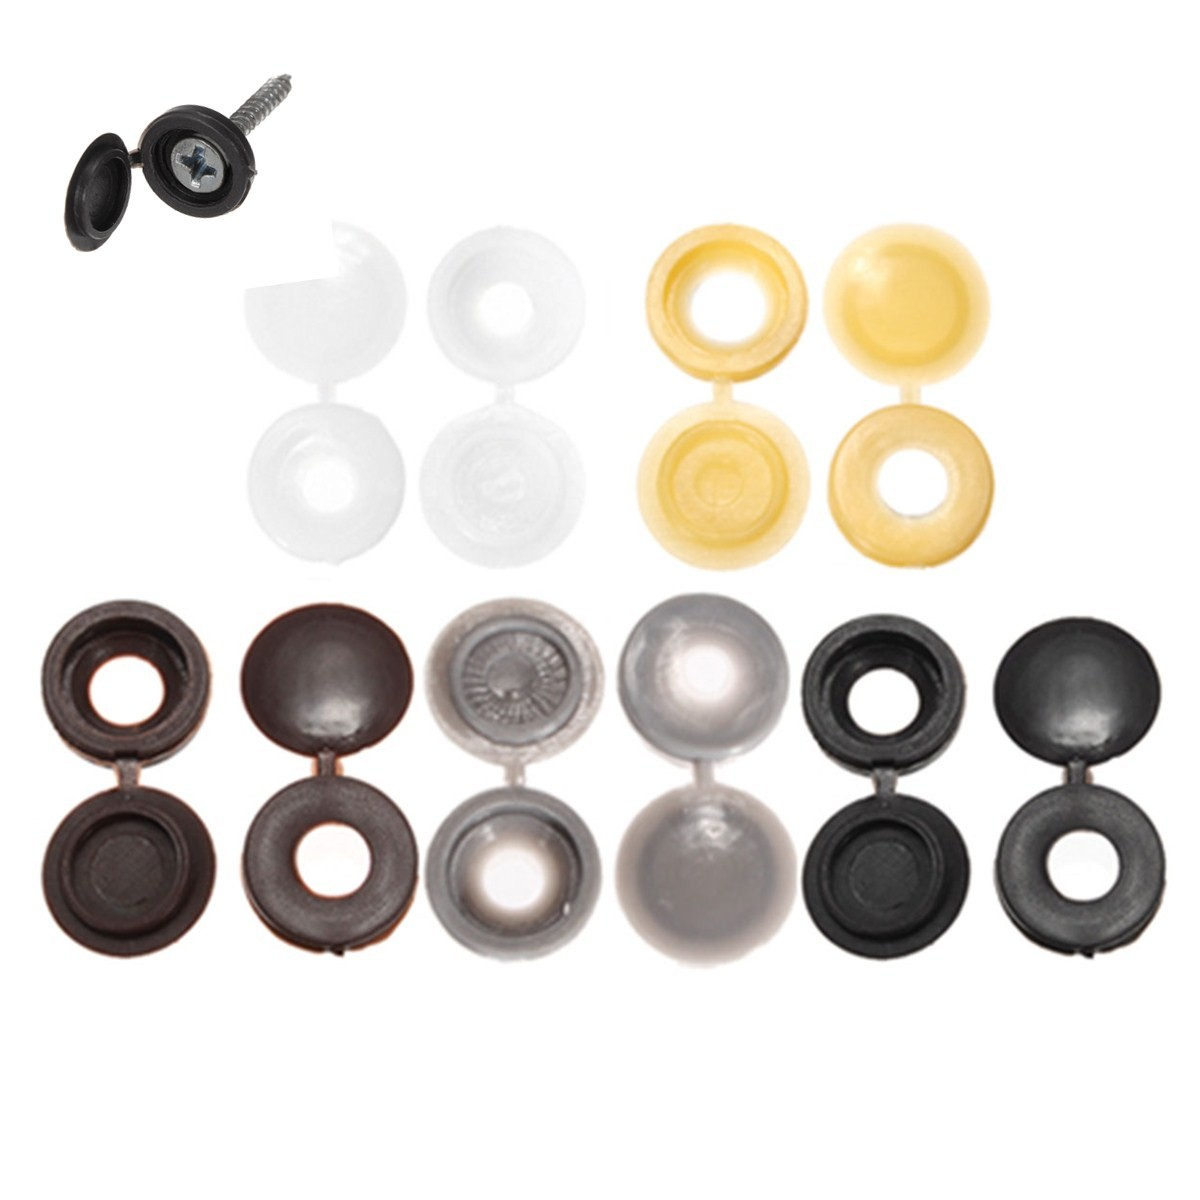 50Pcs Hinged Plastic Screw Cover Fold Caps Button For Car Furniture Decorative Cover